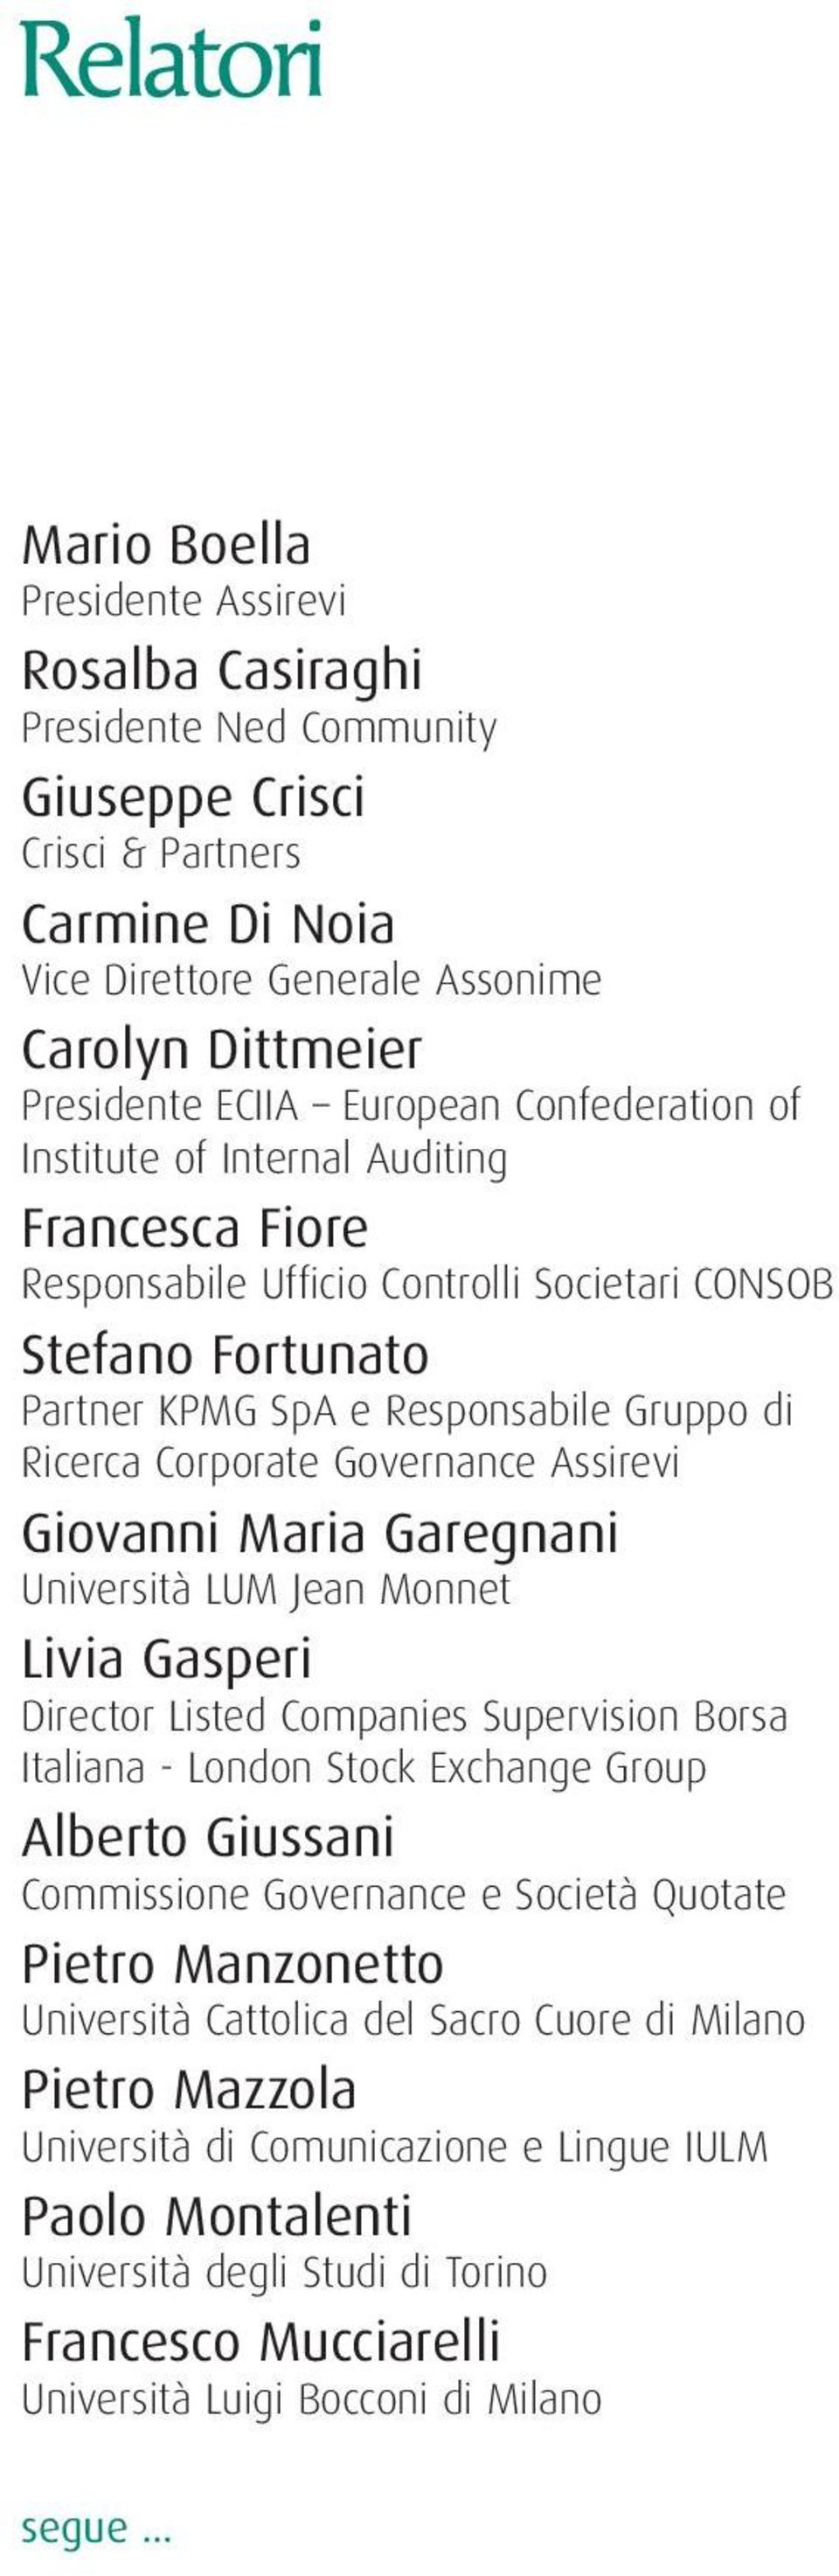 Corporate Governance Assirevi Giovanni Maria Garegnani Università LUM Jean Monnet Livia Gasperi Director Listed Companies Supervision Borsa Italiana - London Stock Exchange Group Alberto Giussani